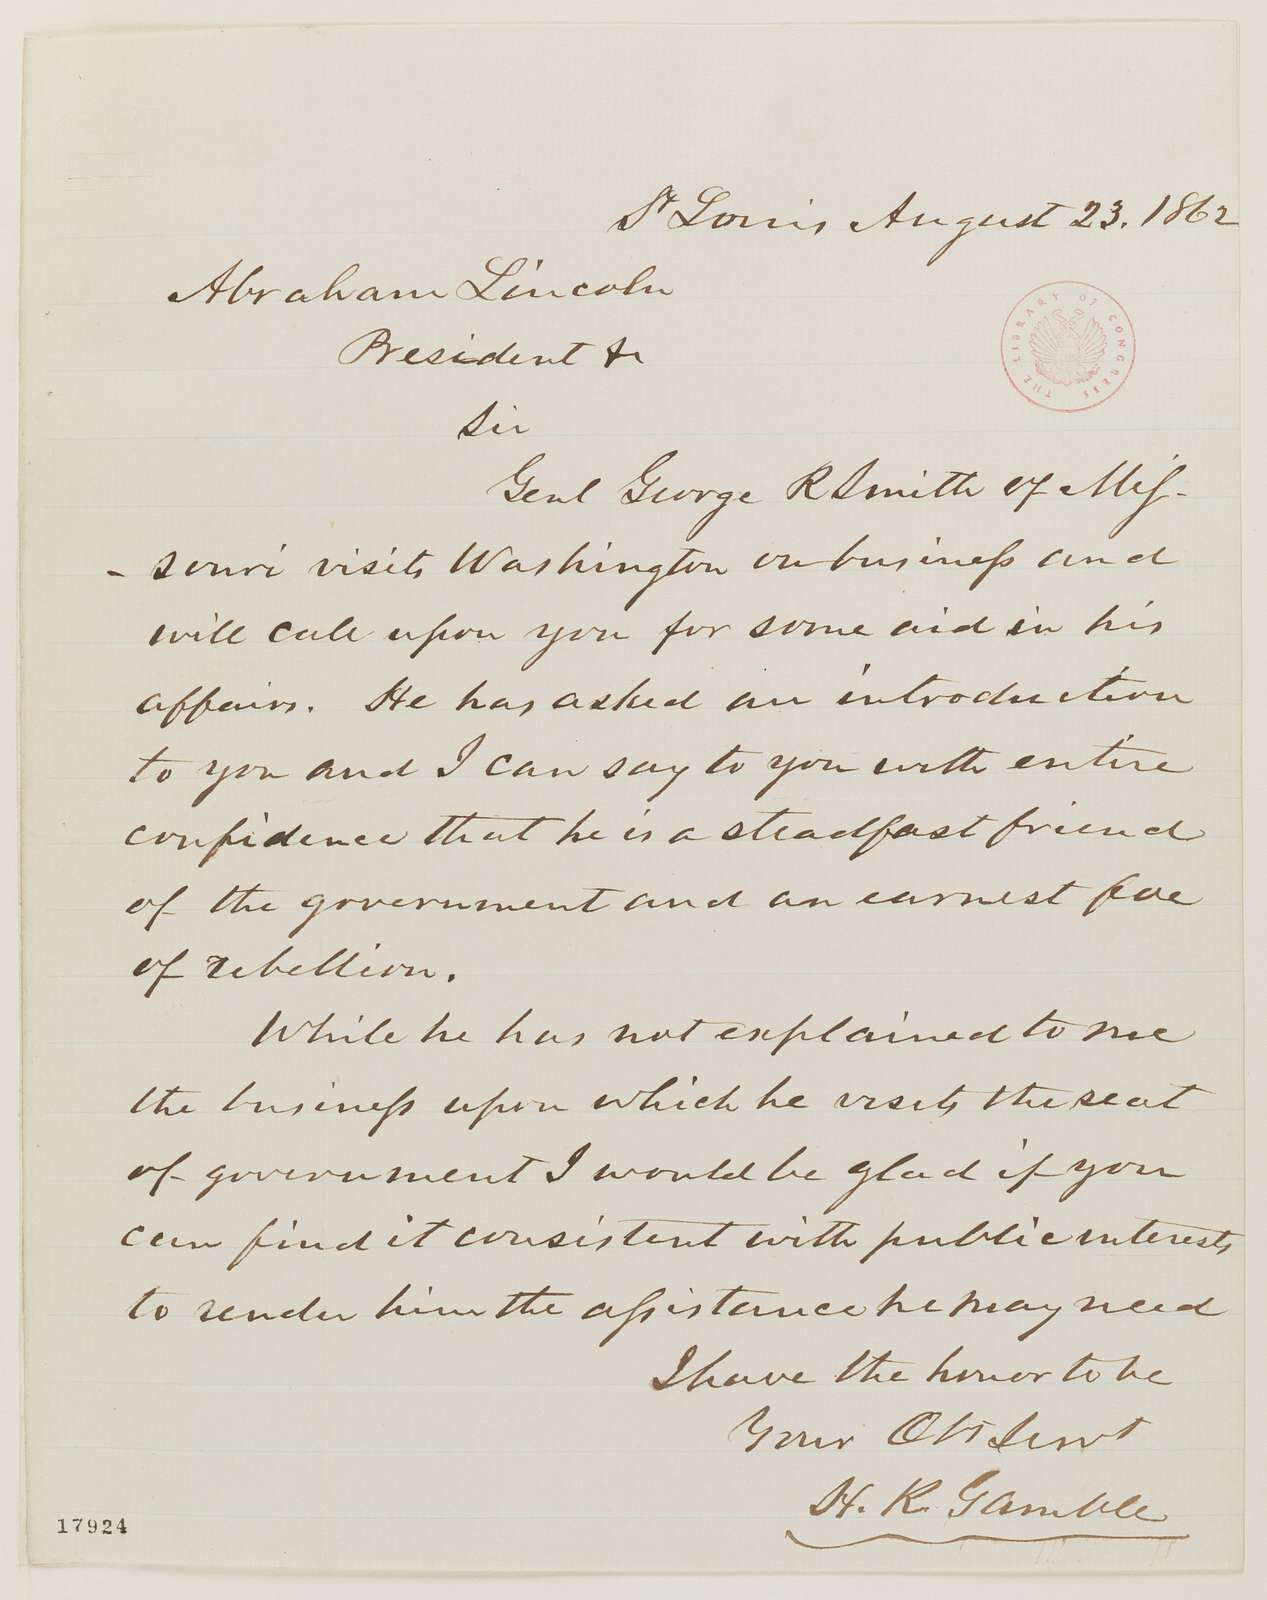 Abraham Lincoln papers: Series 1. General Correspondence. 1833-1916: Hamilton R. Gamble to Abraham Lincoln, Saturday, August 23, 1862 (Introduction)